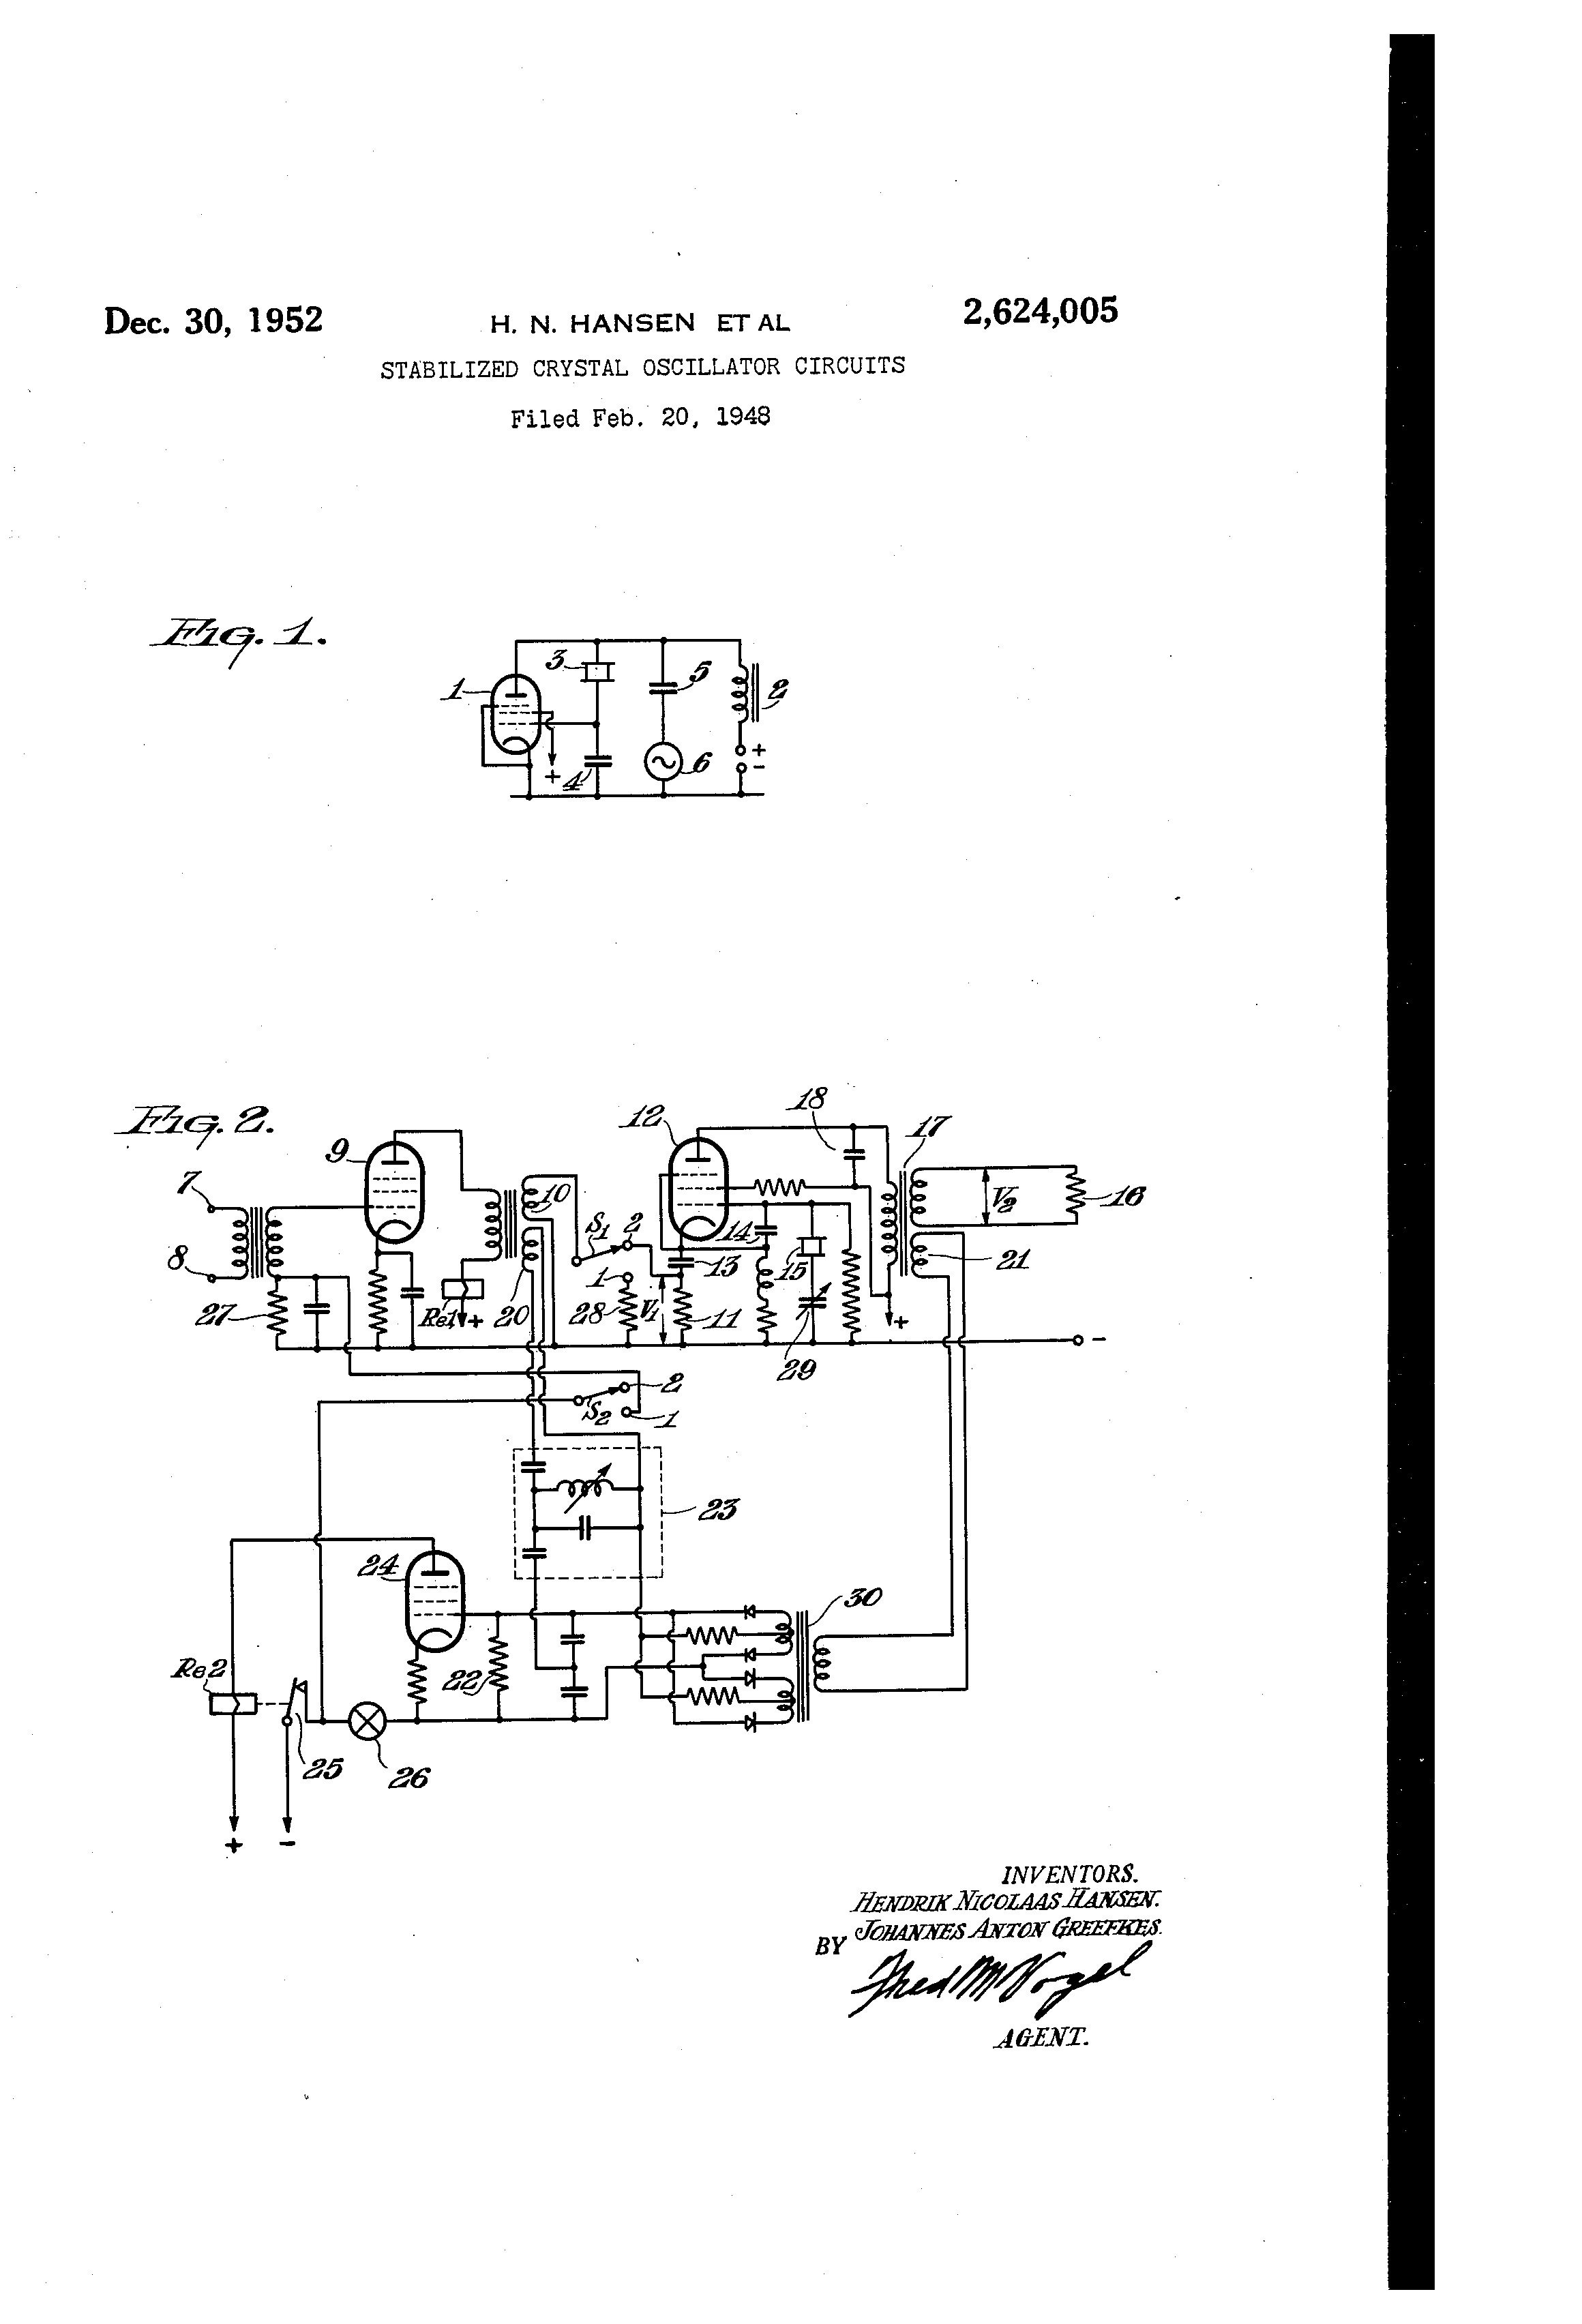 Brevet Us2624005 Stabilized Crystal Oscillator Circuits Google Patent Drawing